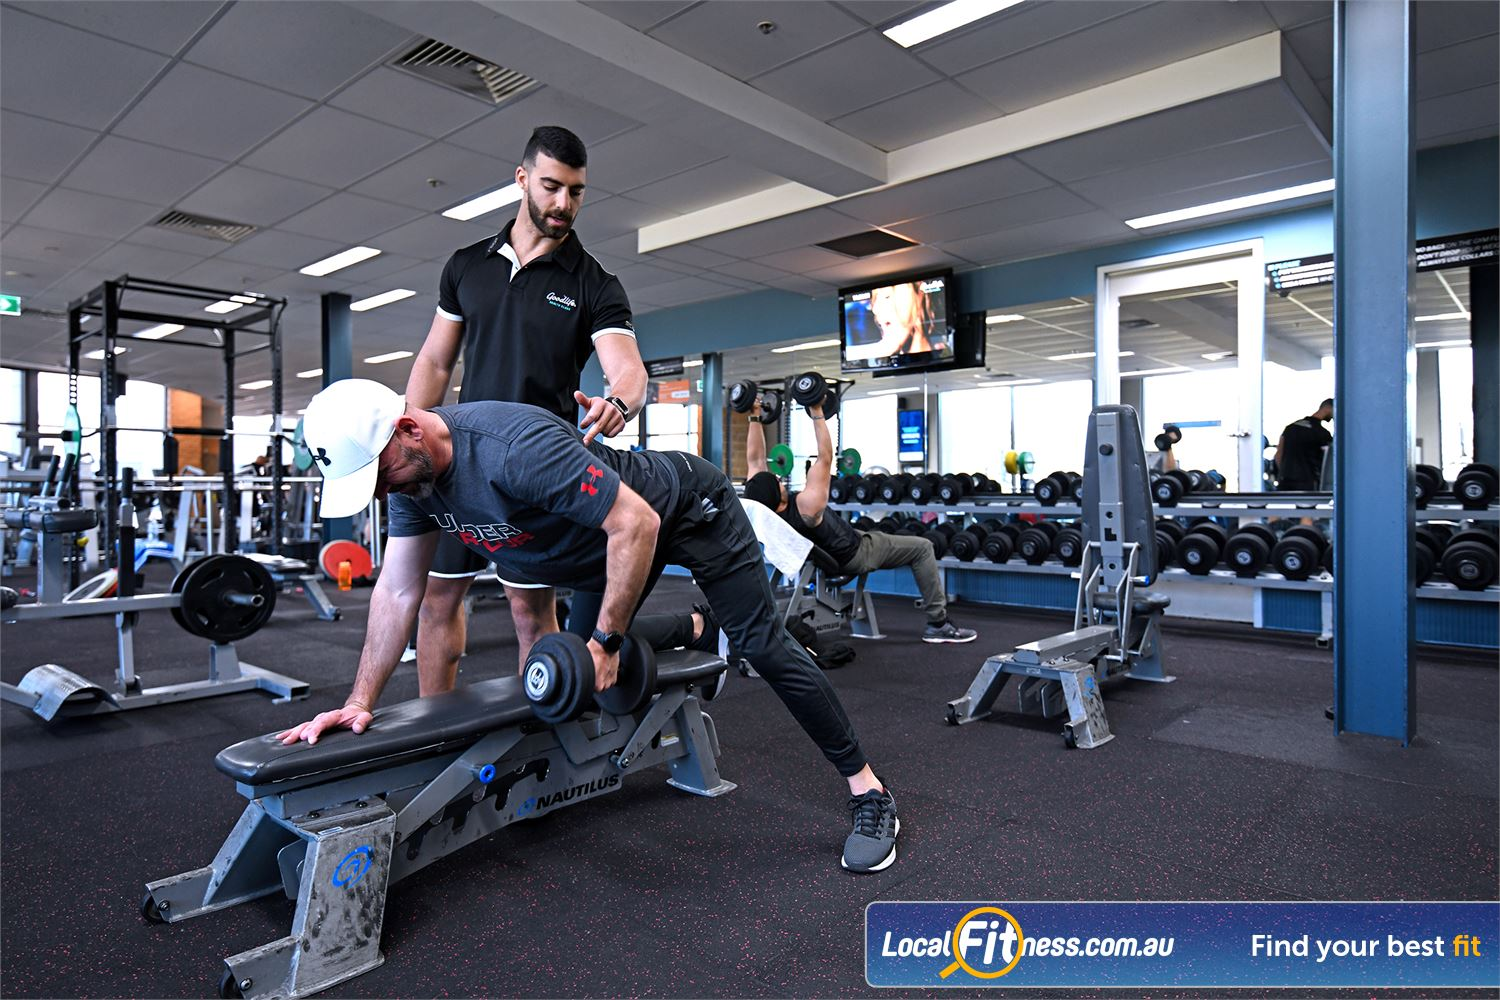 Goodlife Health Clubs Near Werribee Our Point Cook personal trainers will monitor your progress and results.